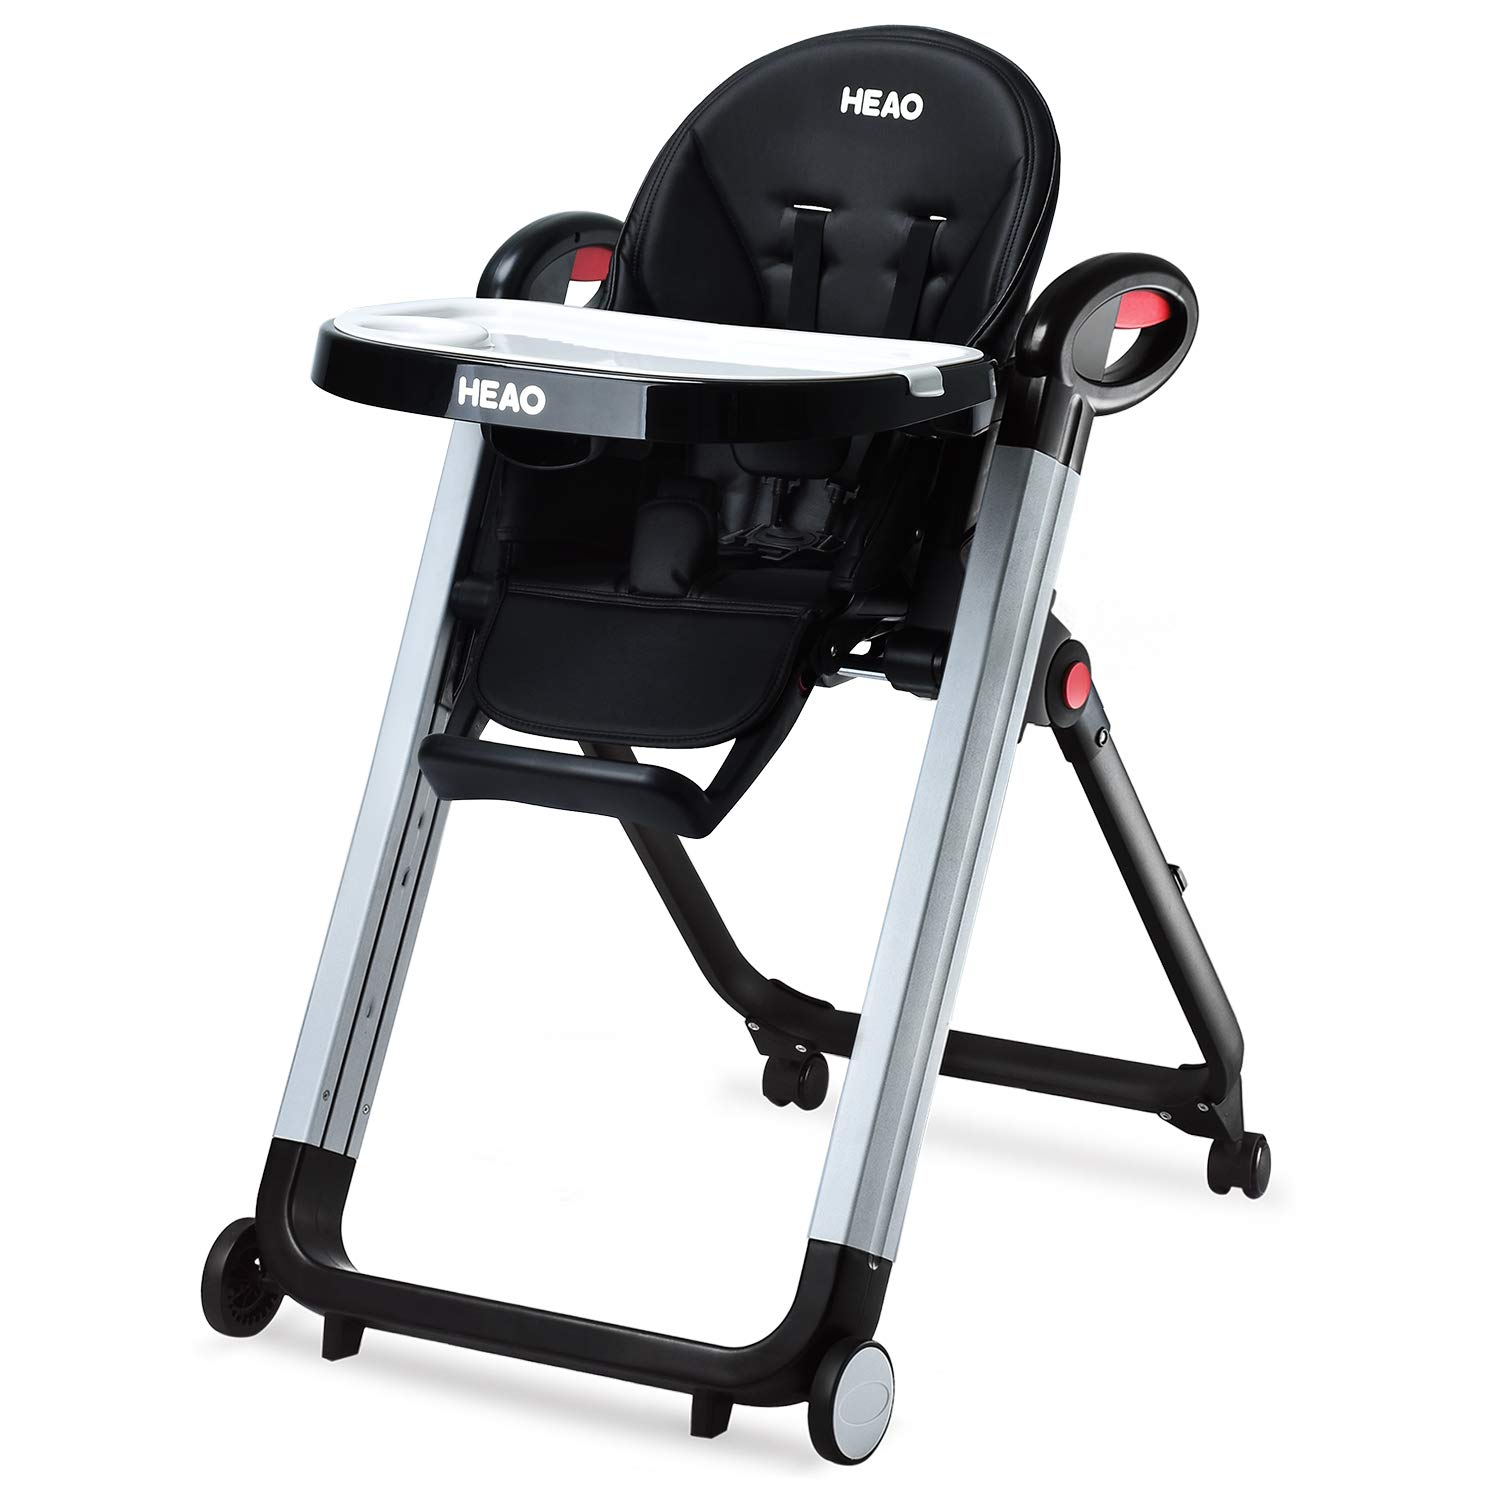 HEAO Foldable High Chair Reclining Height Adjustable 4 Wheels (Black) by HEAO